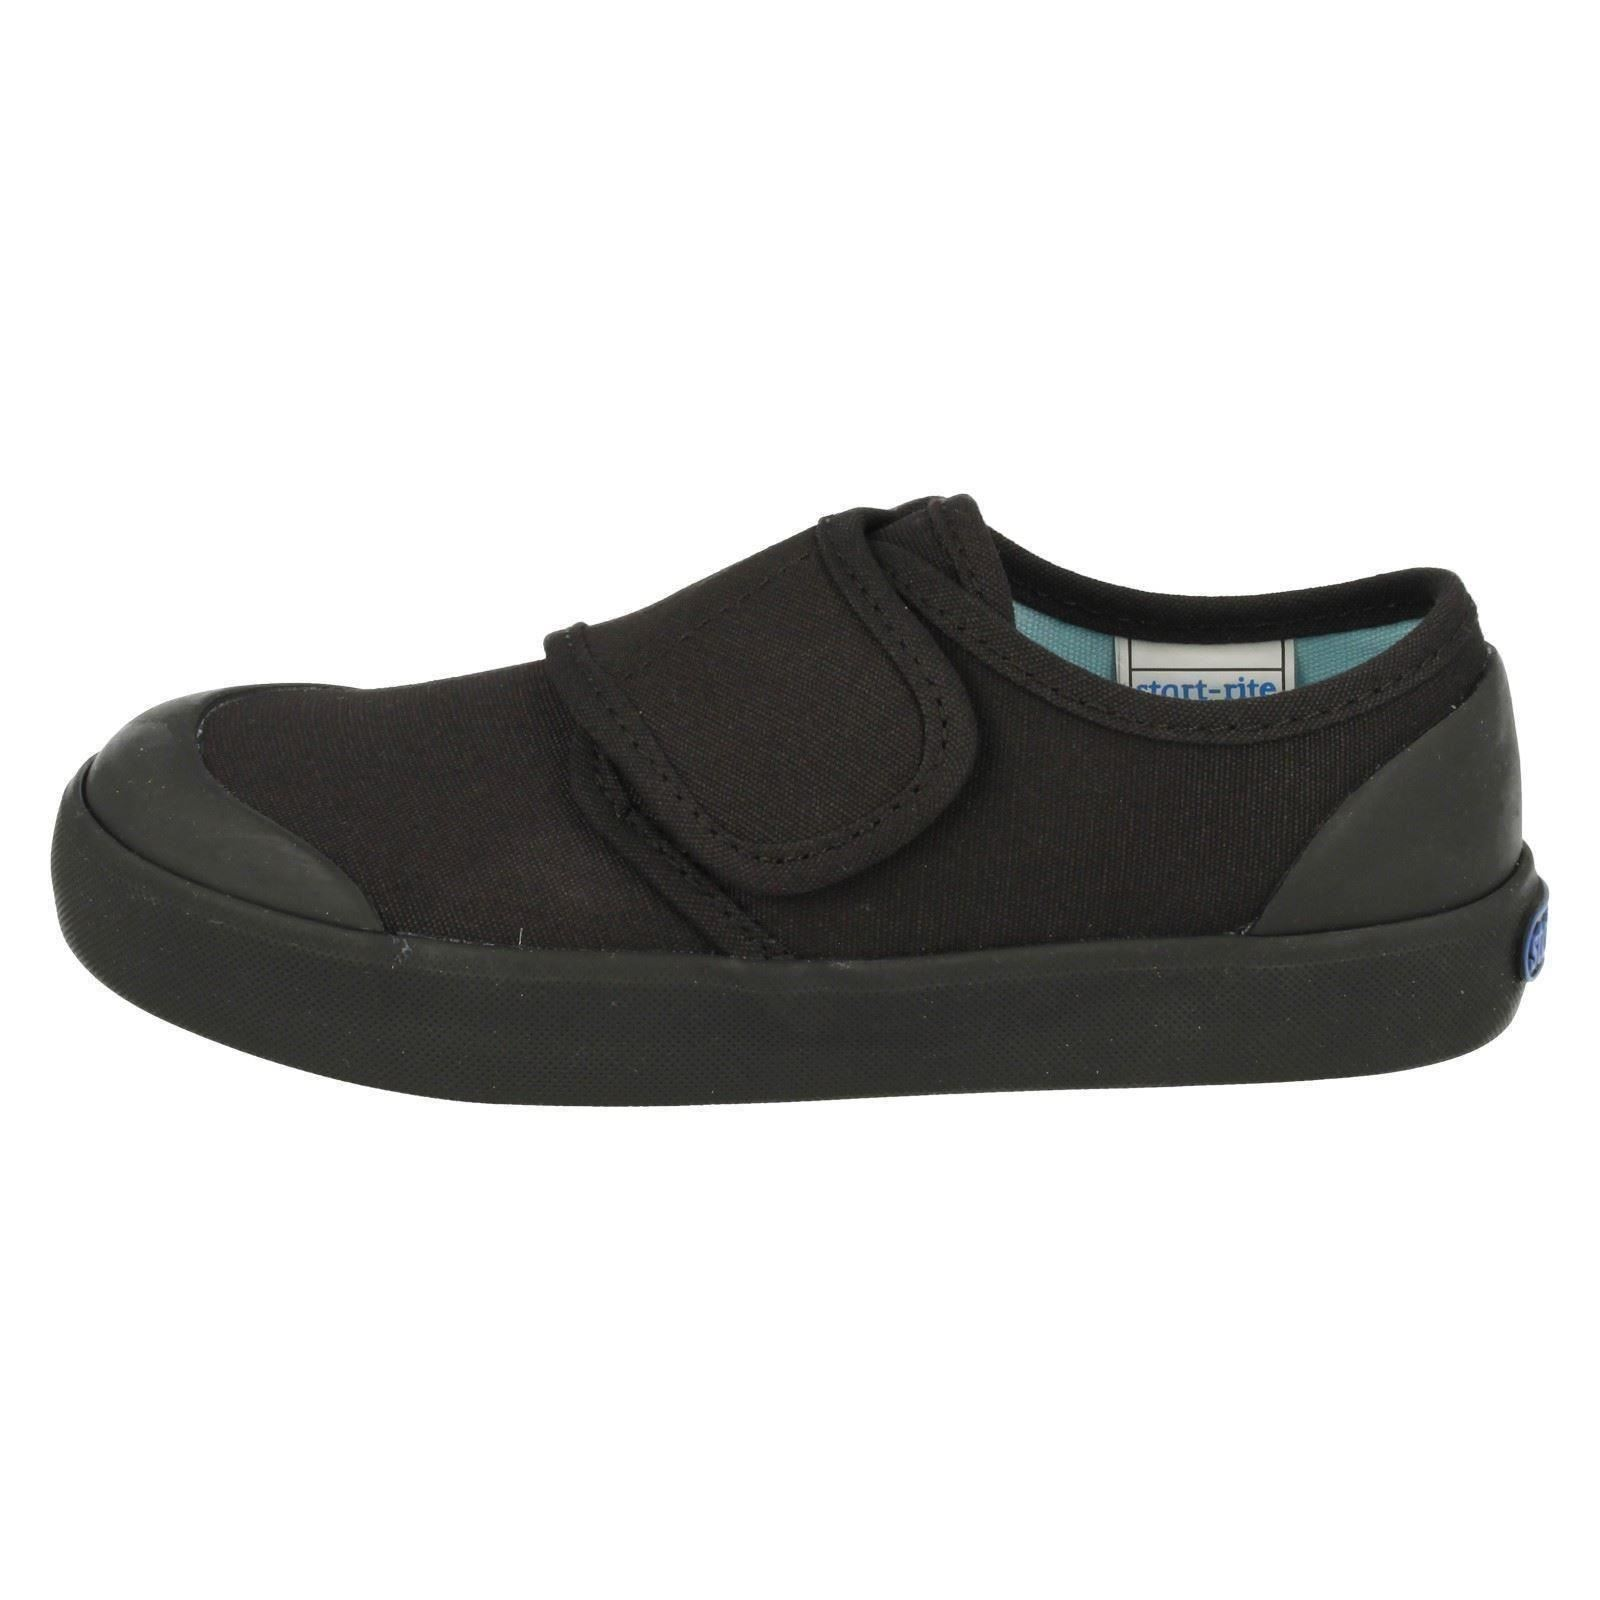 ce07edecb2b Start-rite Skip Black Canvas School Plimsolls pumps Unisex Sizes 7 - 3 8.  About this product. Picture 1 of 10  Picture 2 of 10 ...